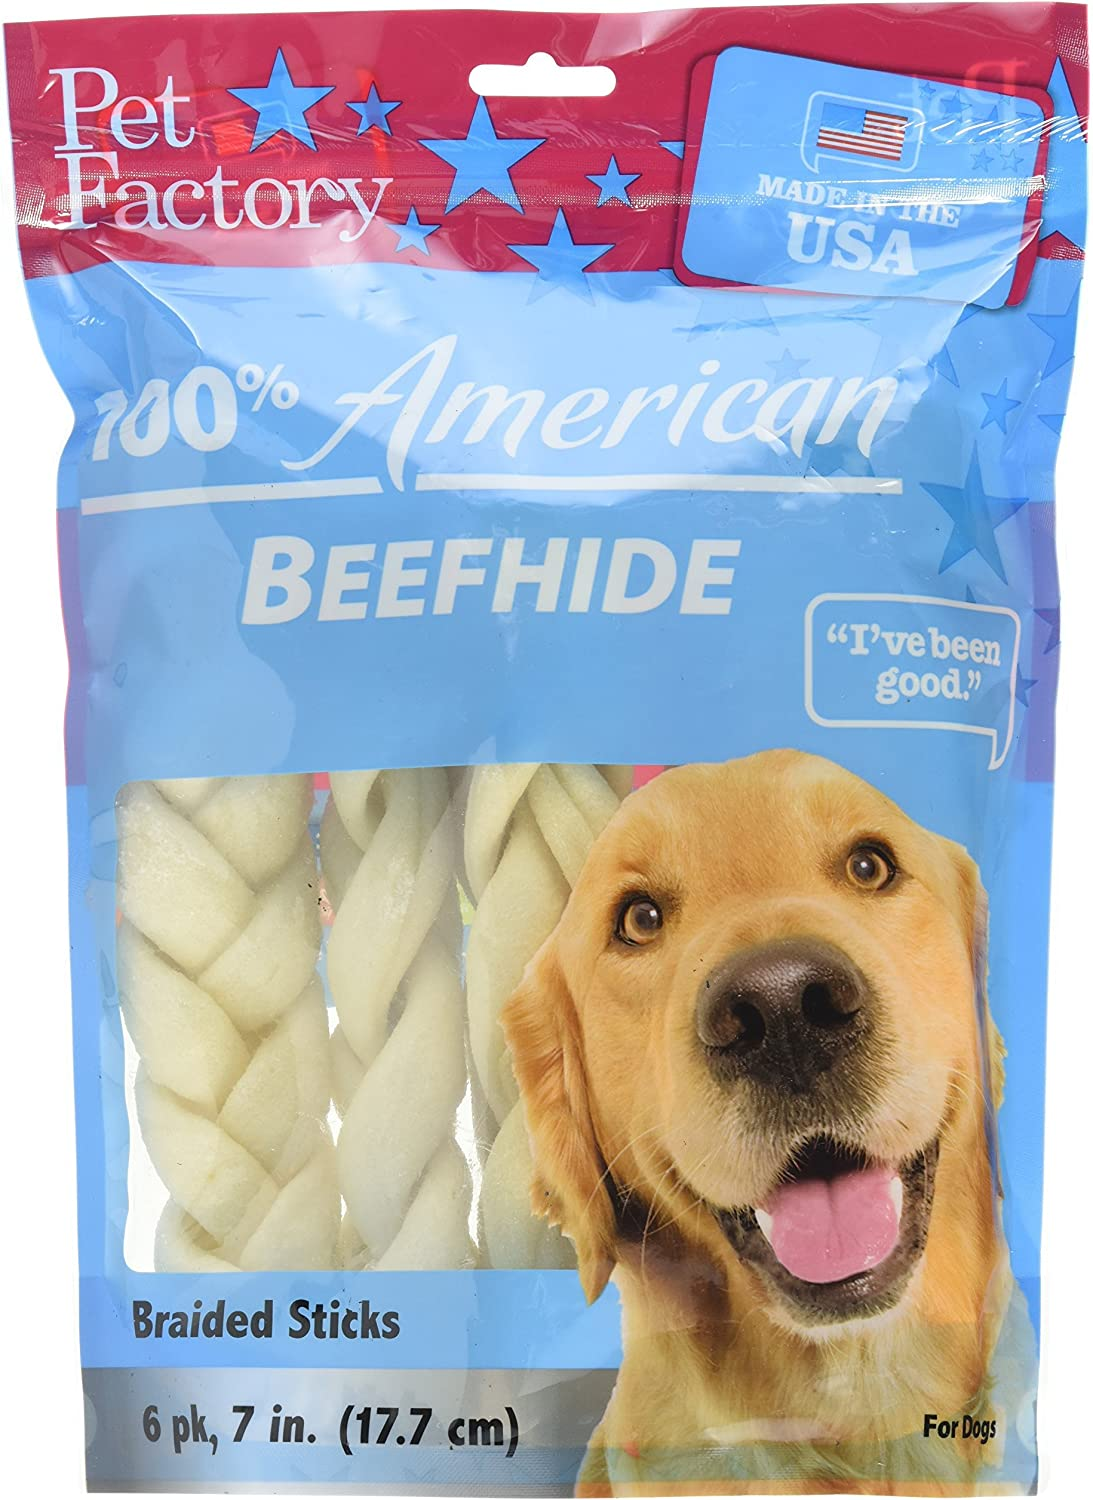 """Pet Factory Beefhide Braided Sticks 78105 Made in USA, Handmade, Digestive 7-8"""" Medium Braids Dog Treats from American Feeder Cattle, Improves Gums & Dental Health (Pack of 6) Resealable Package"""